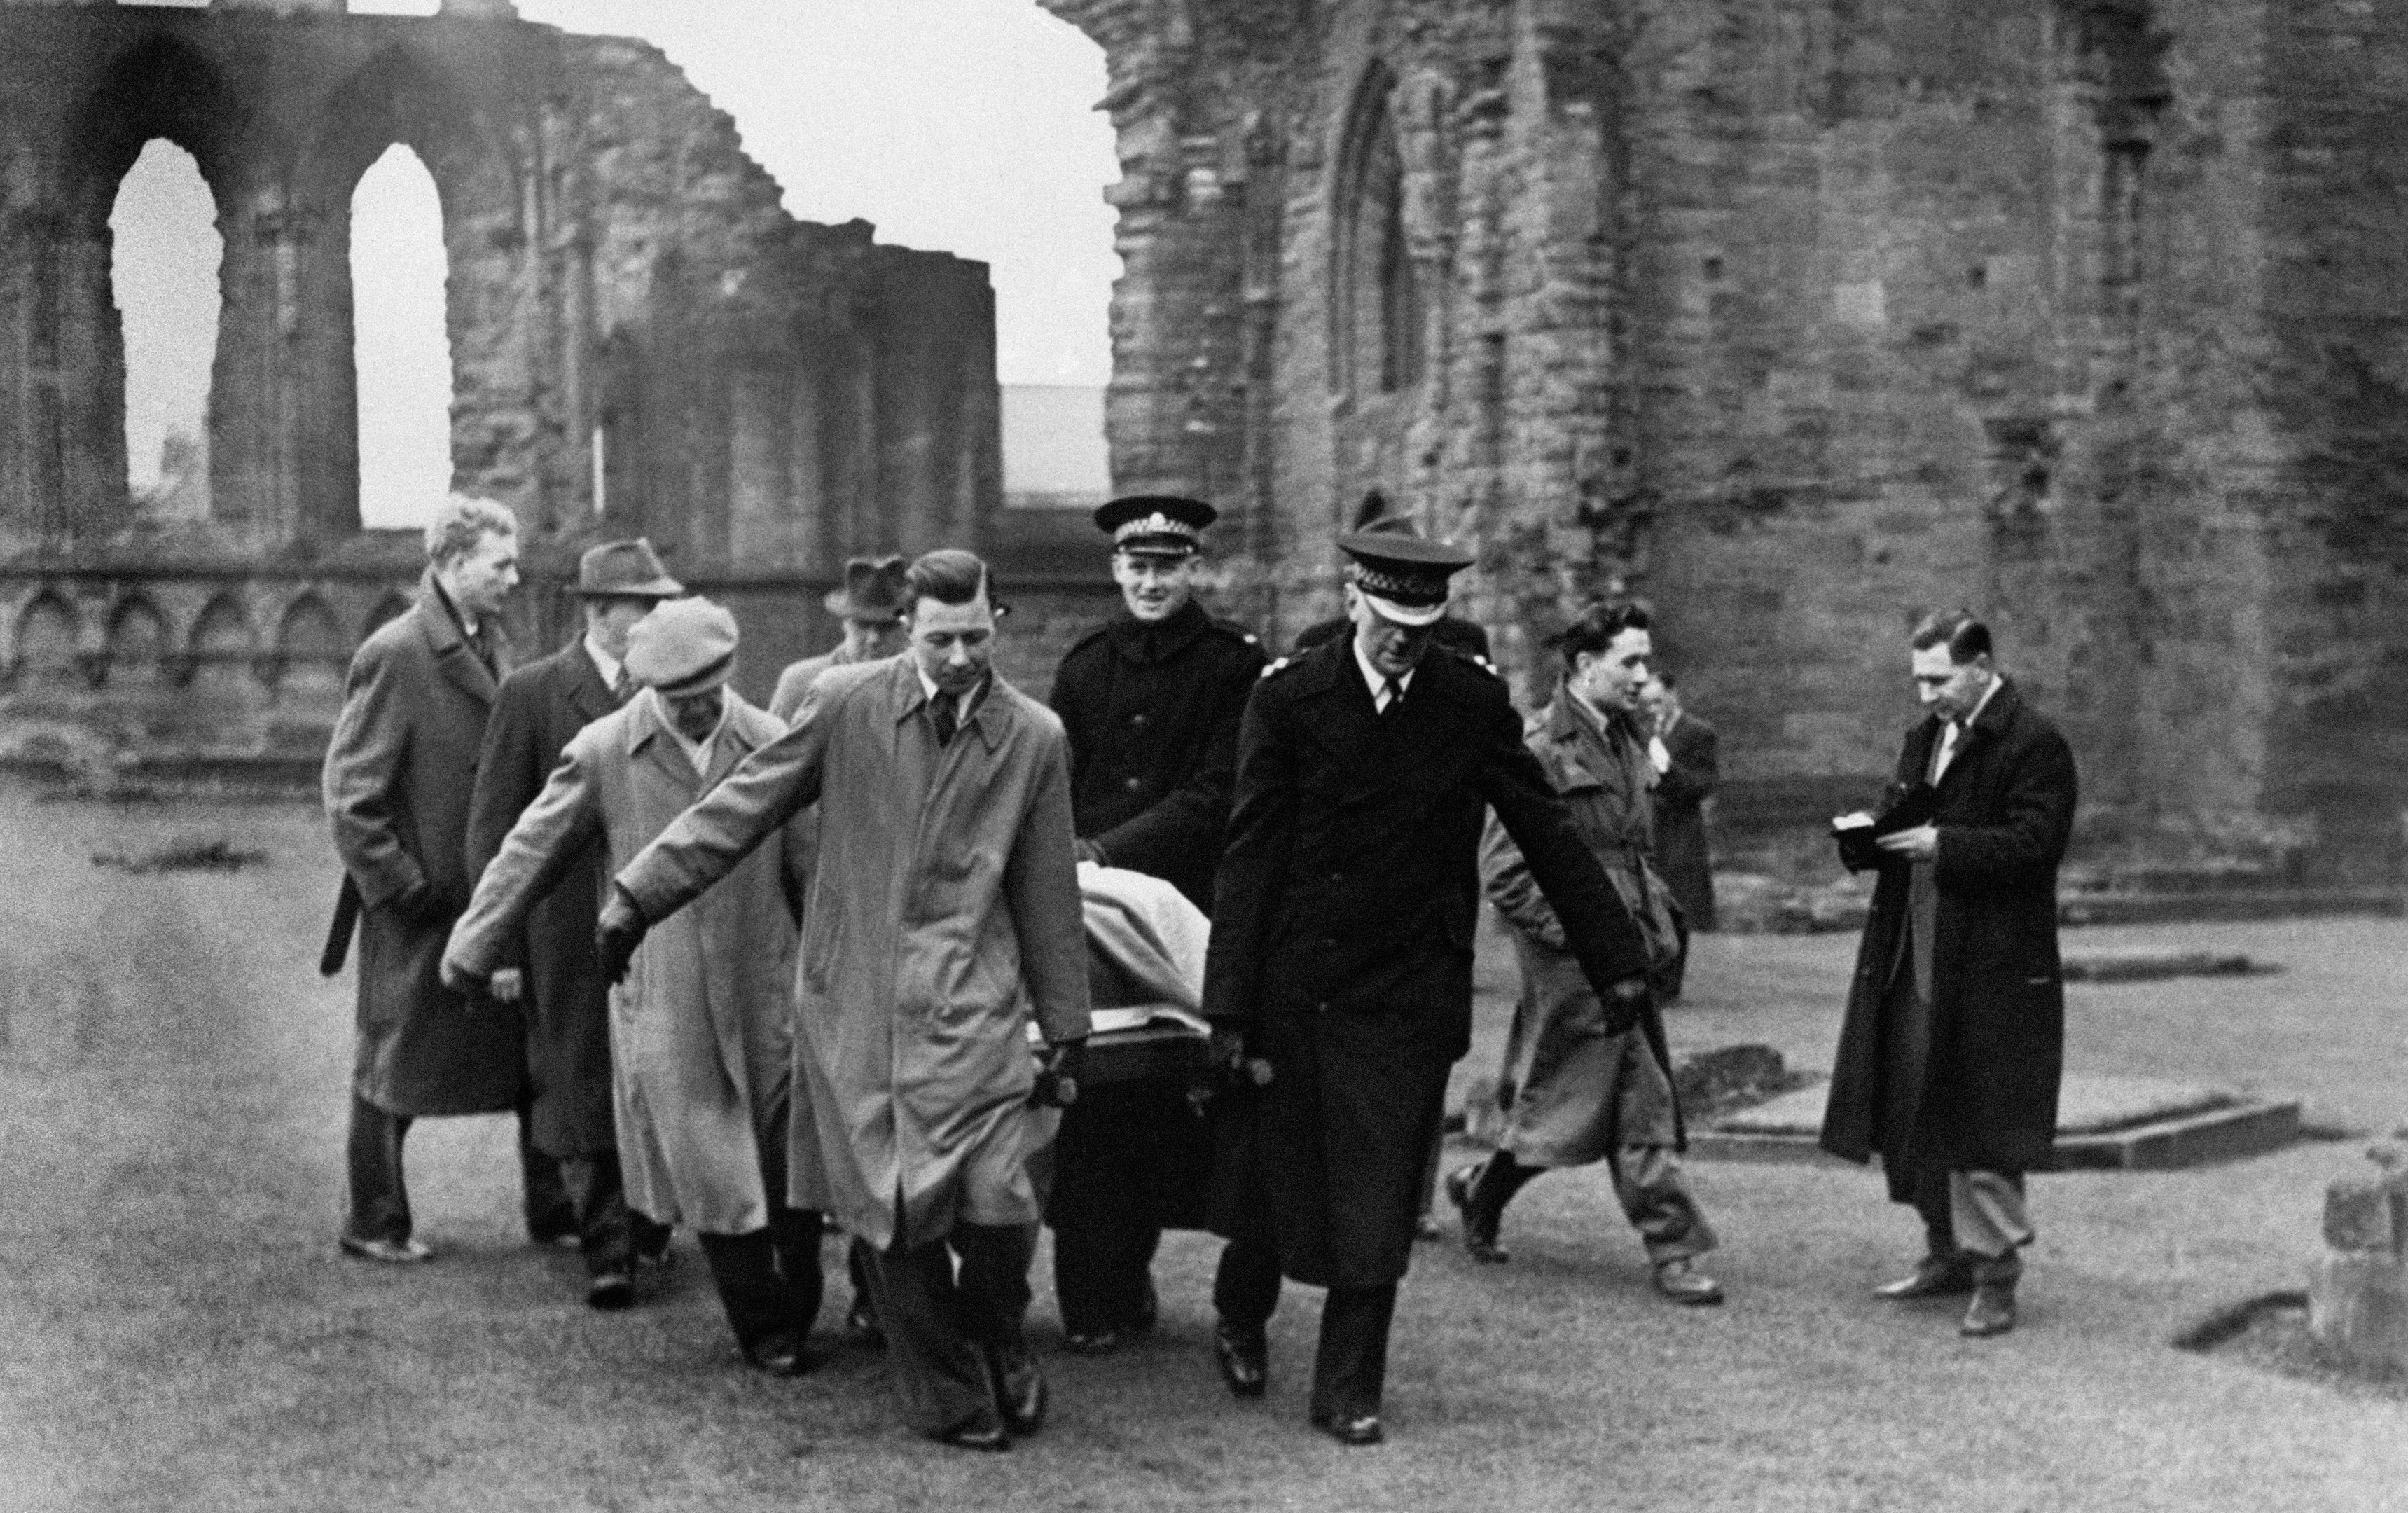 The Stone of Destiny being removed from Arbroath Abbey where it was found following its disappearance from Westminster Abbey in 1950 but could it be on the move again?